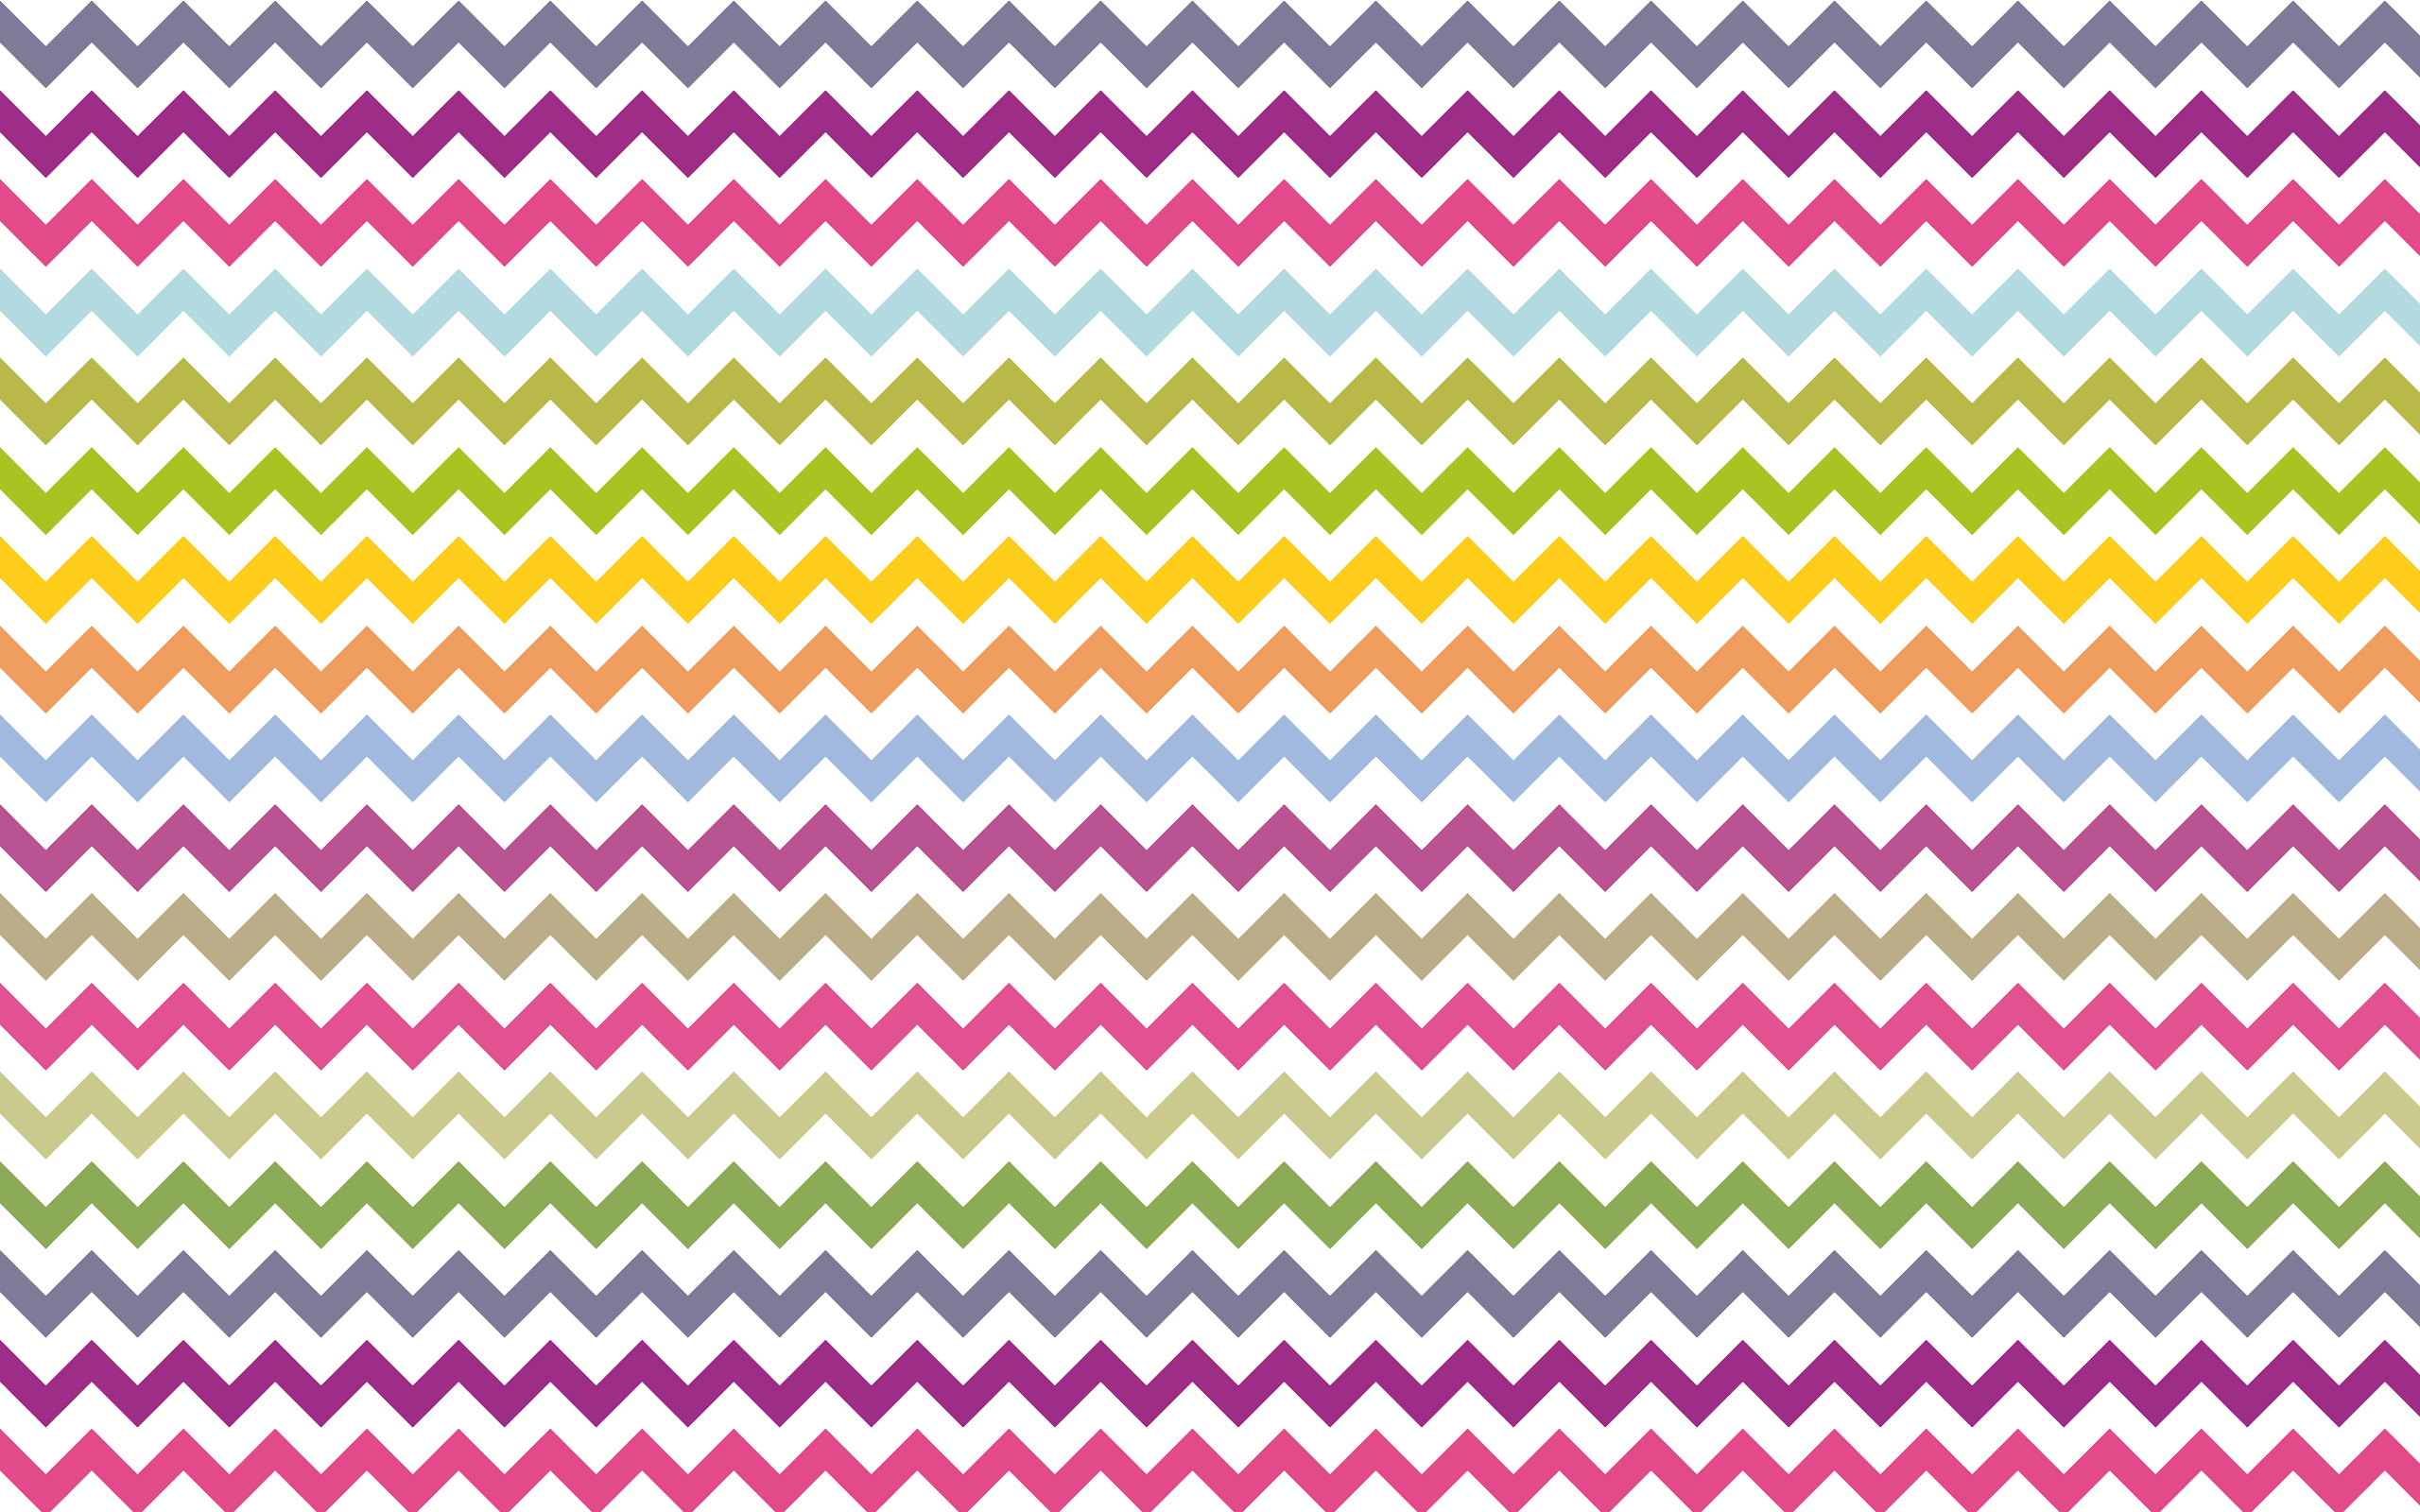 Lets see those chevrons With this challenge we want to see all the 2560x1600